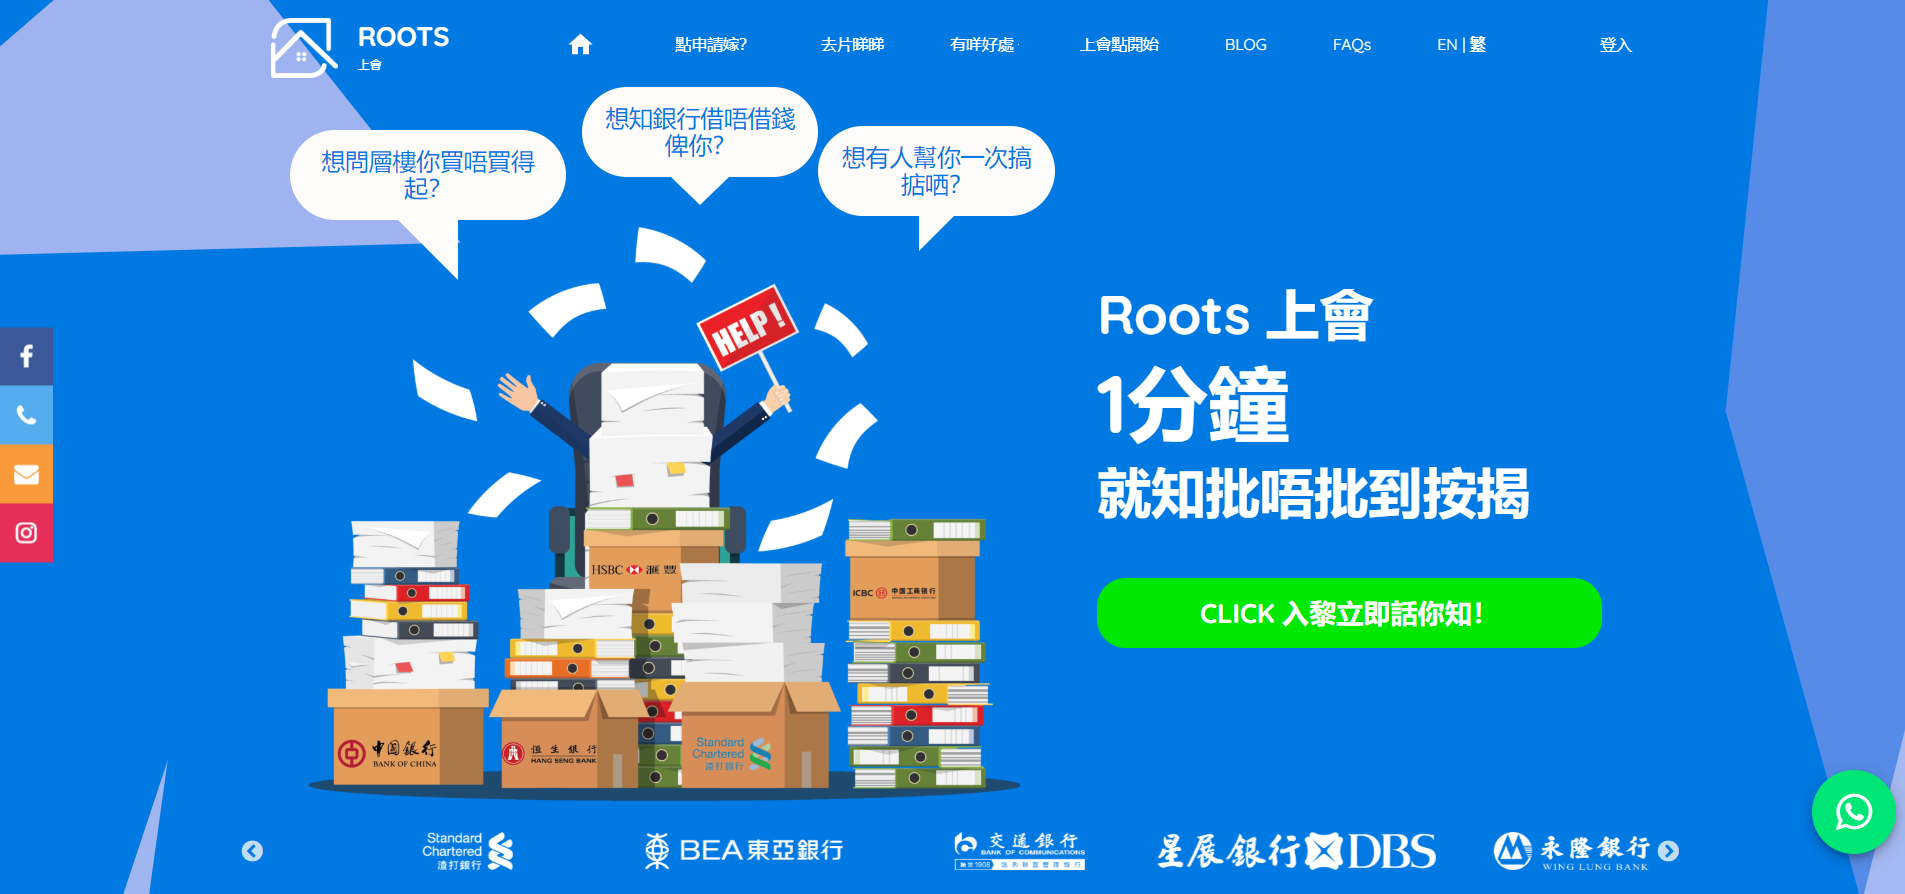 hkroots 金融科技 按揭比較 初創 startup hk roots